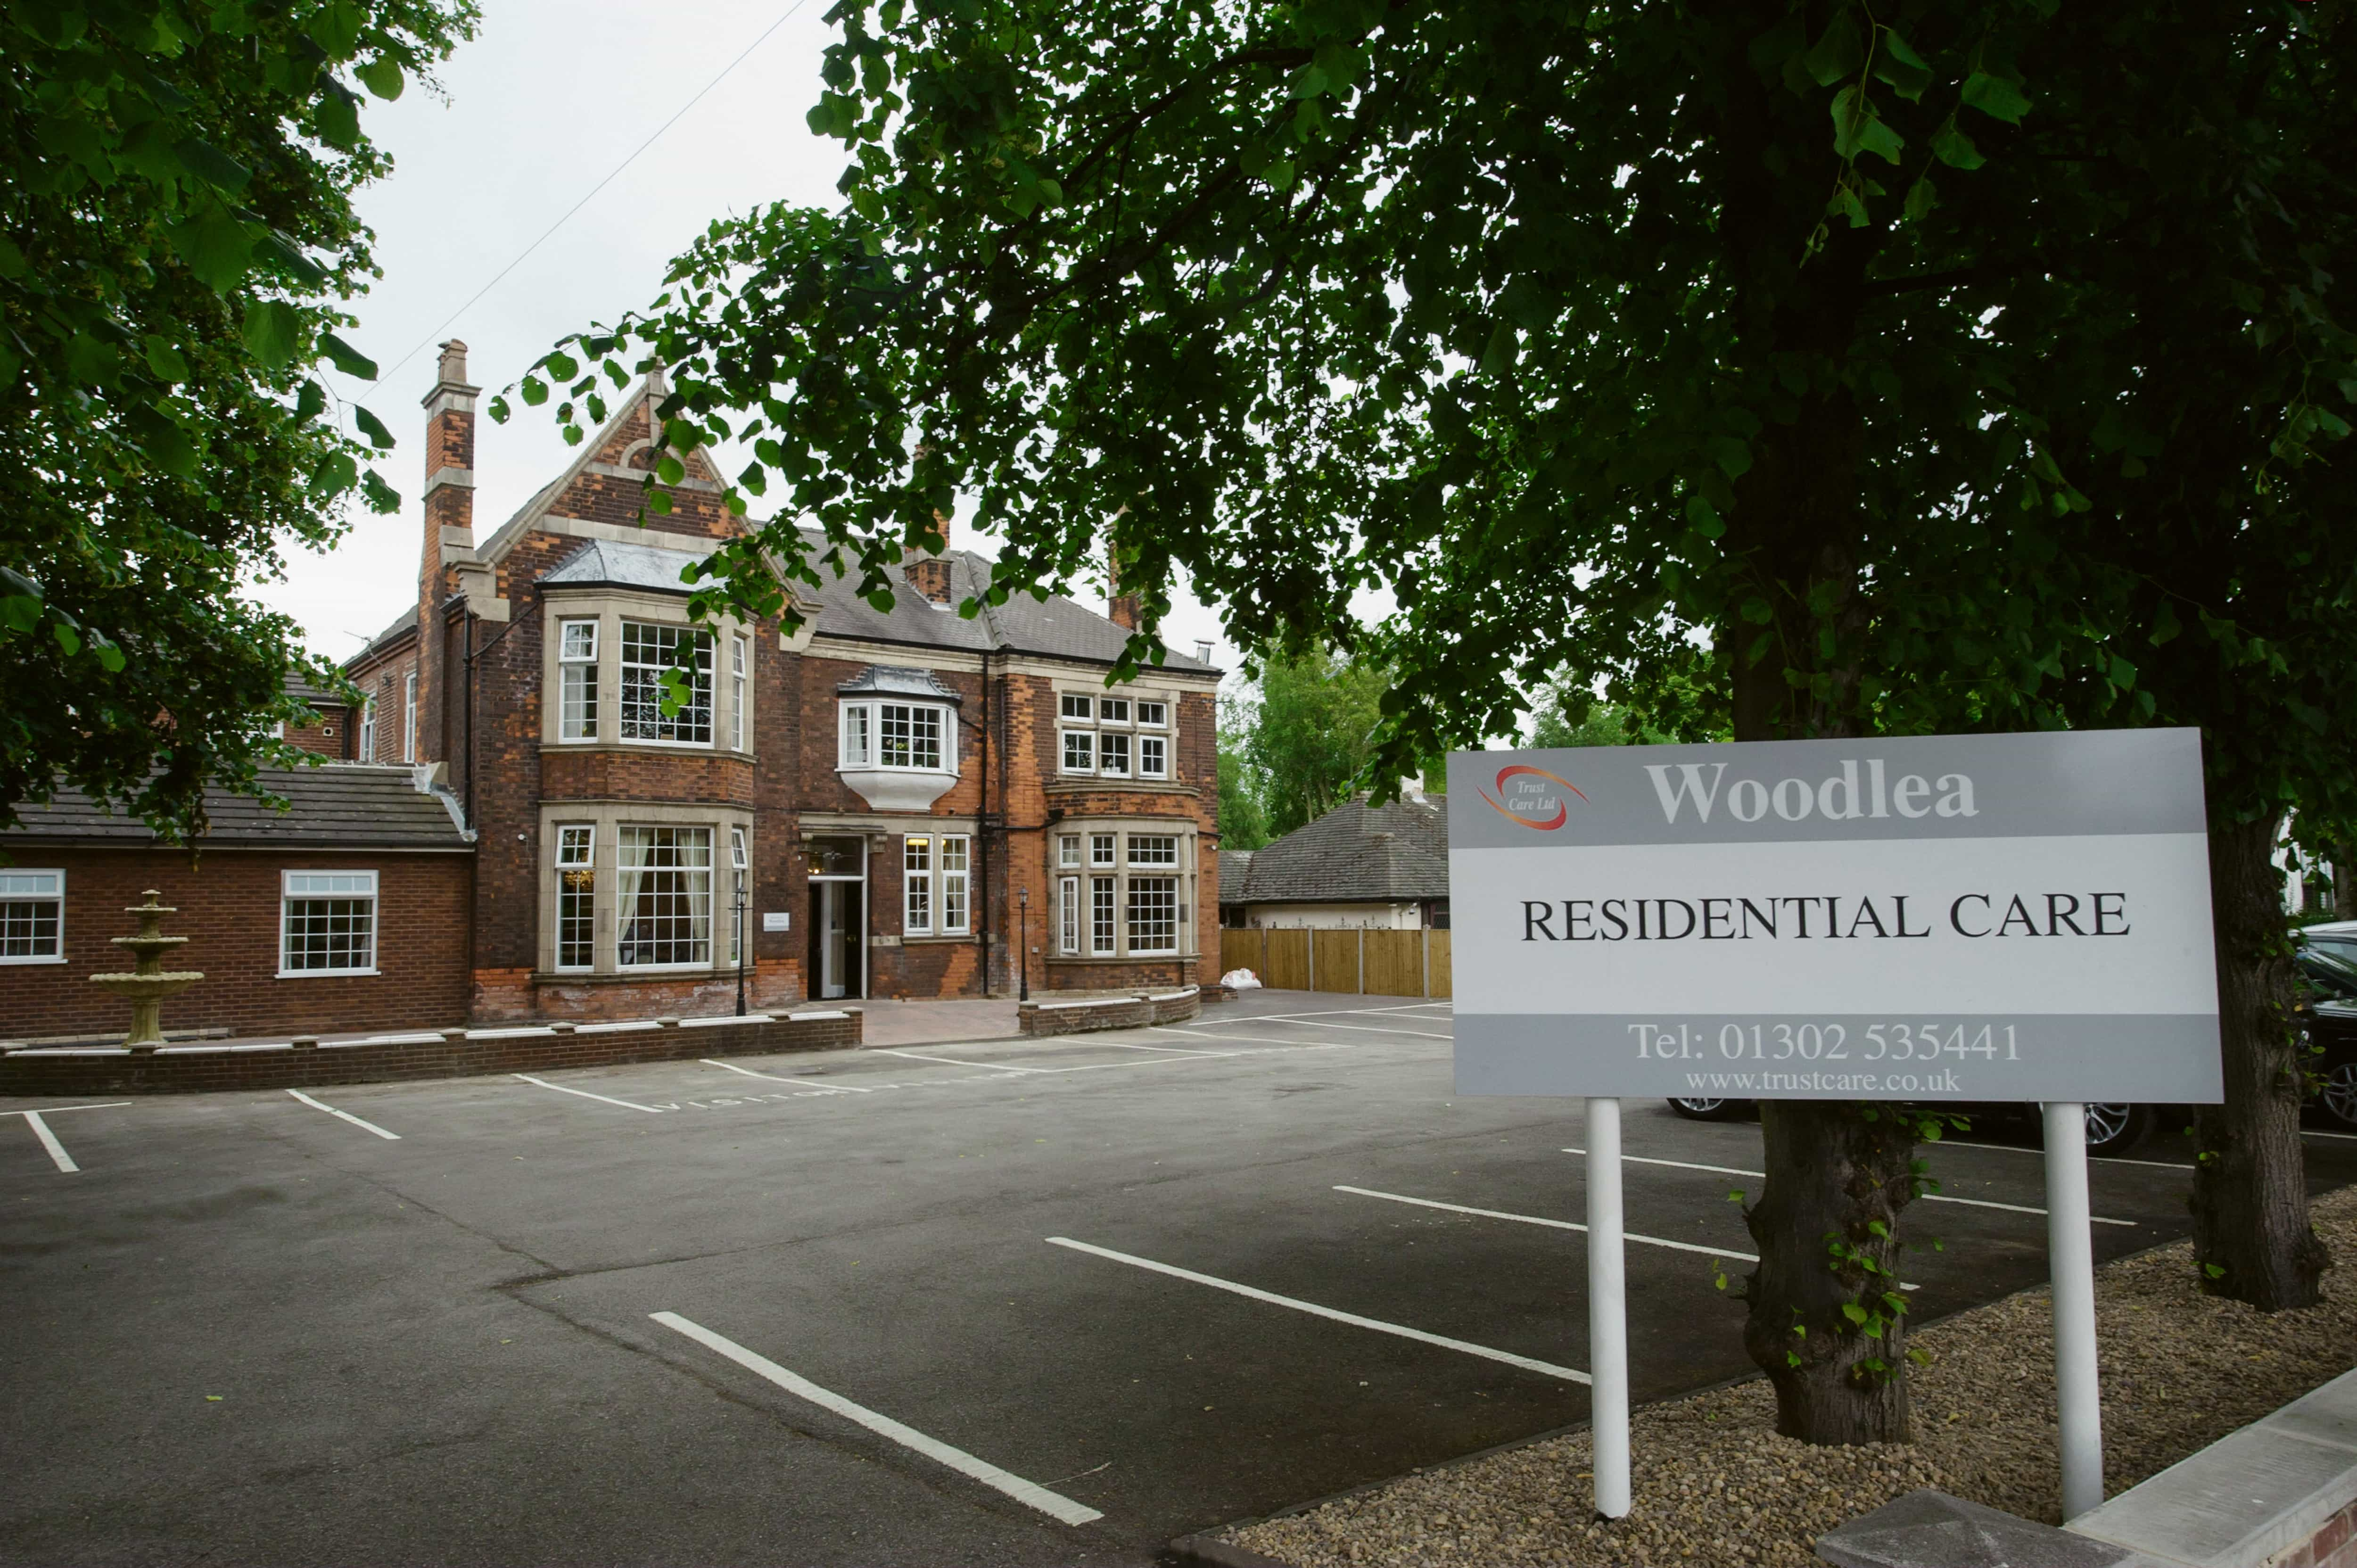 Care home in Doncaster